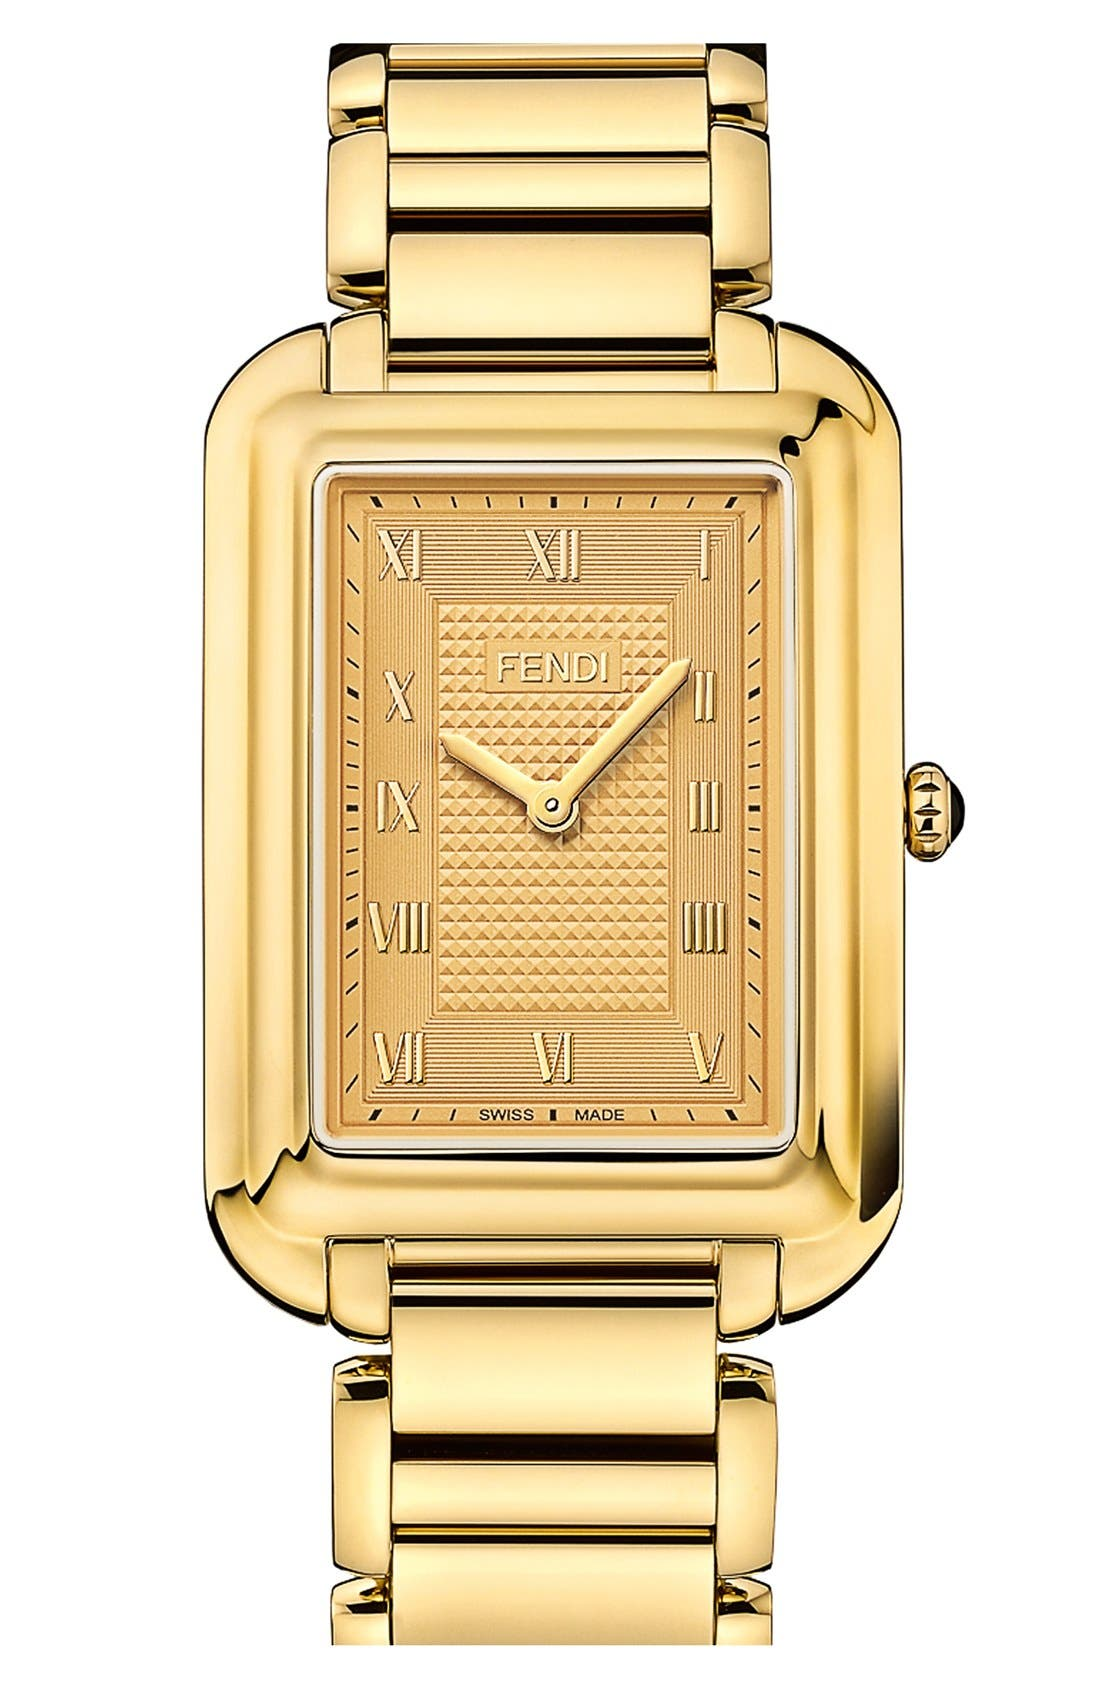 Alternate Image 1 Selected - Fendi 'Classico' Rectangular Bracelet Watch, 31mm x 38mm